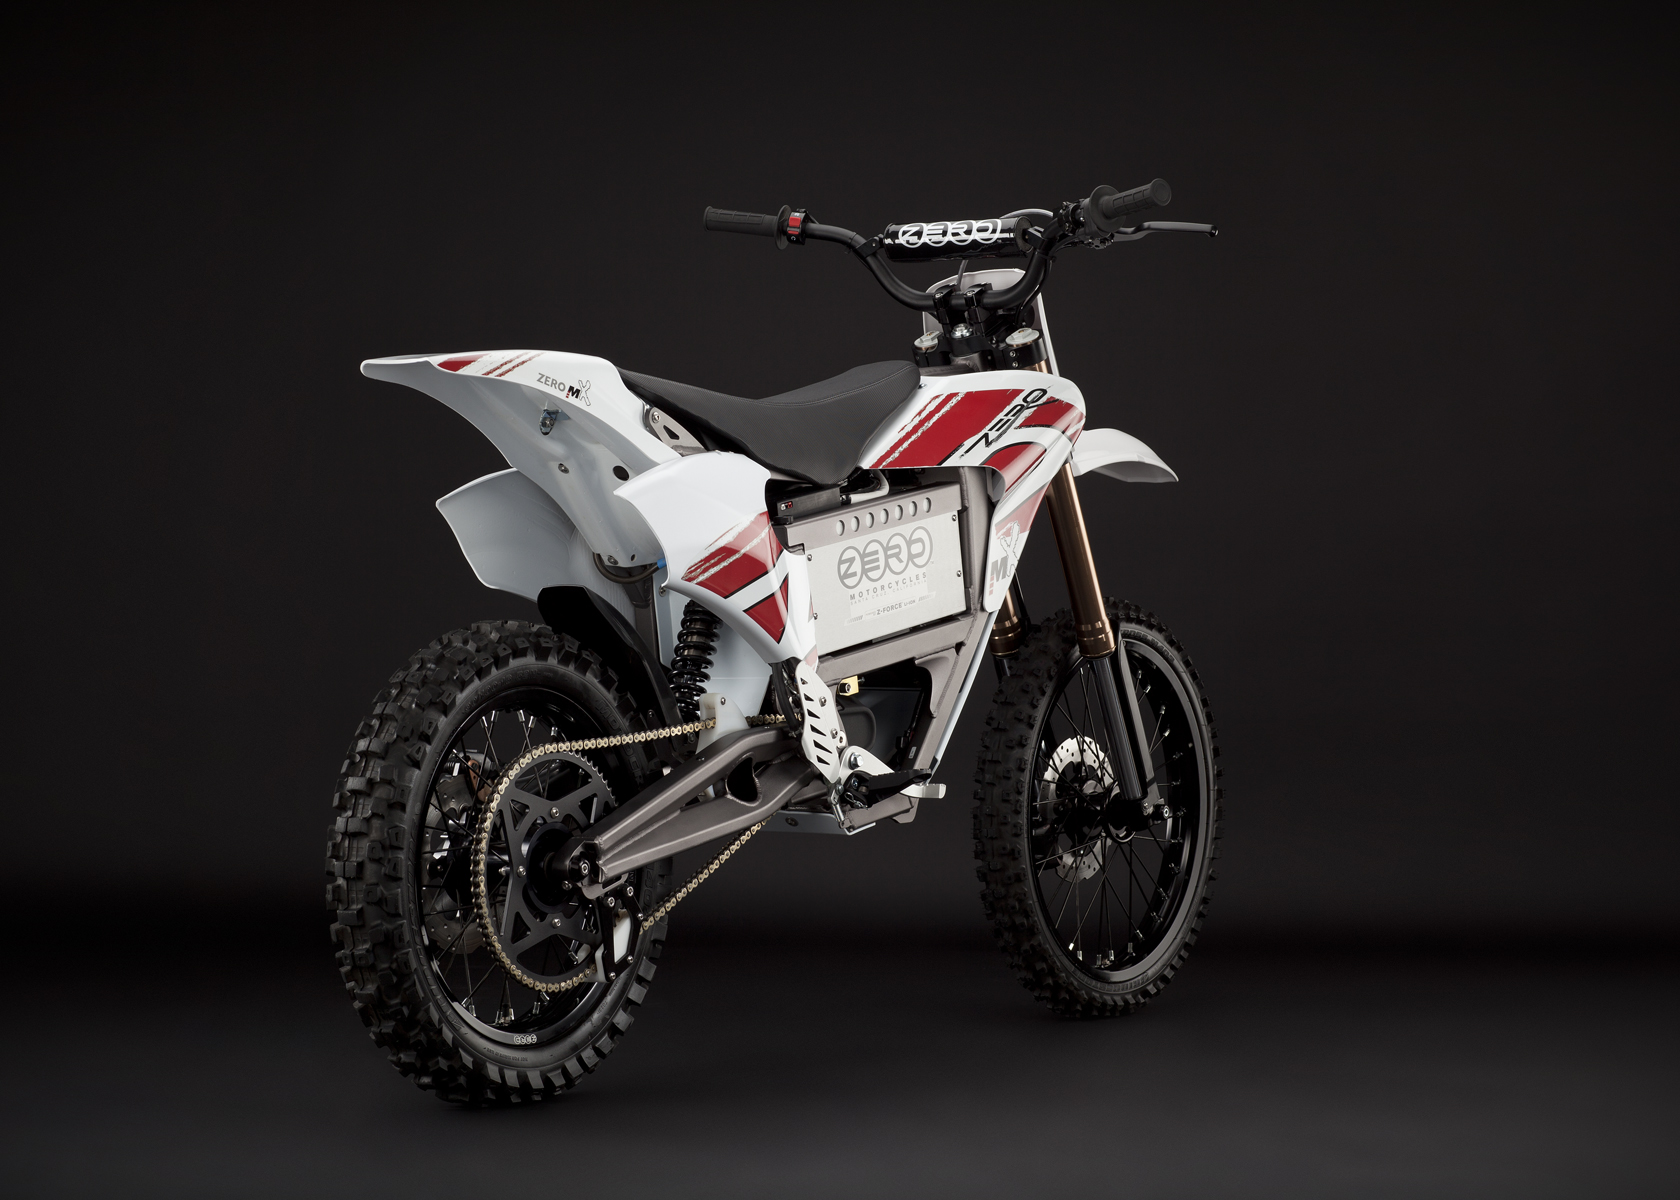 '.2011 Zero MX Electric Motorcycle: Angle Right, Rear View, Dirt Model.'